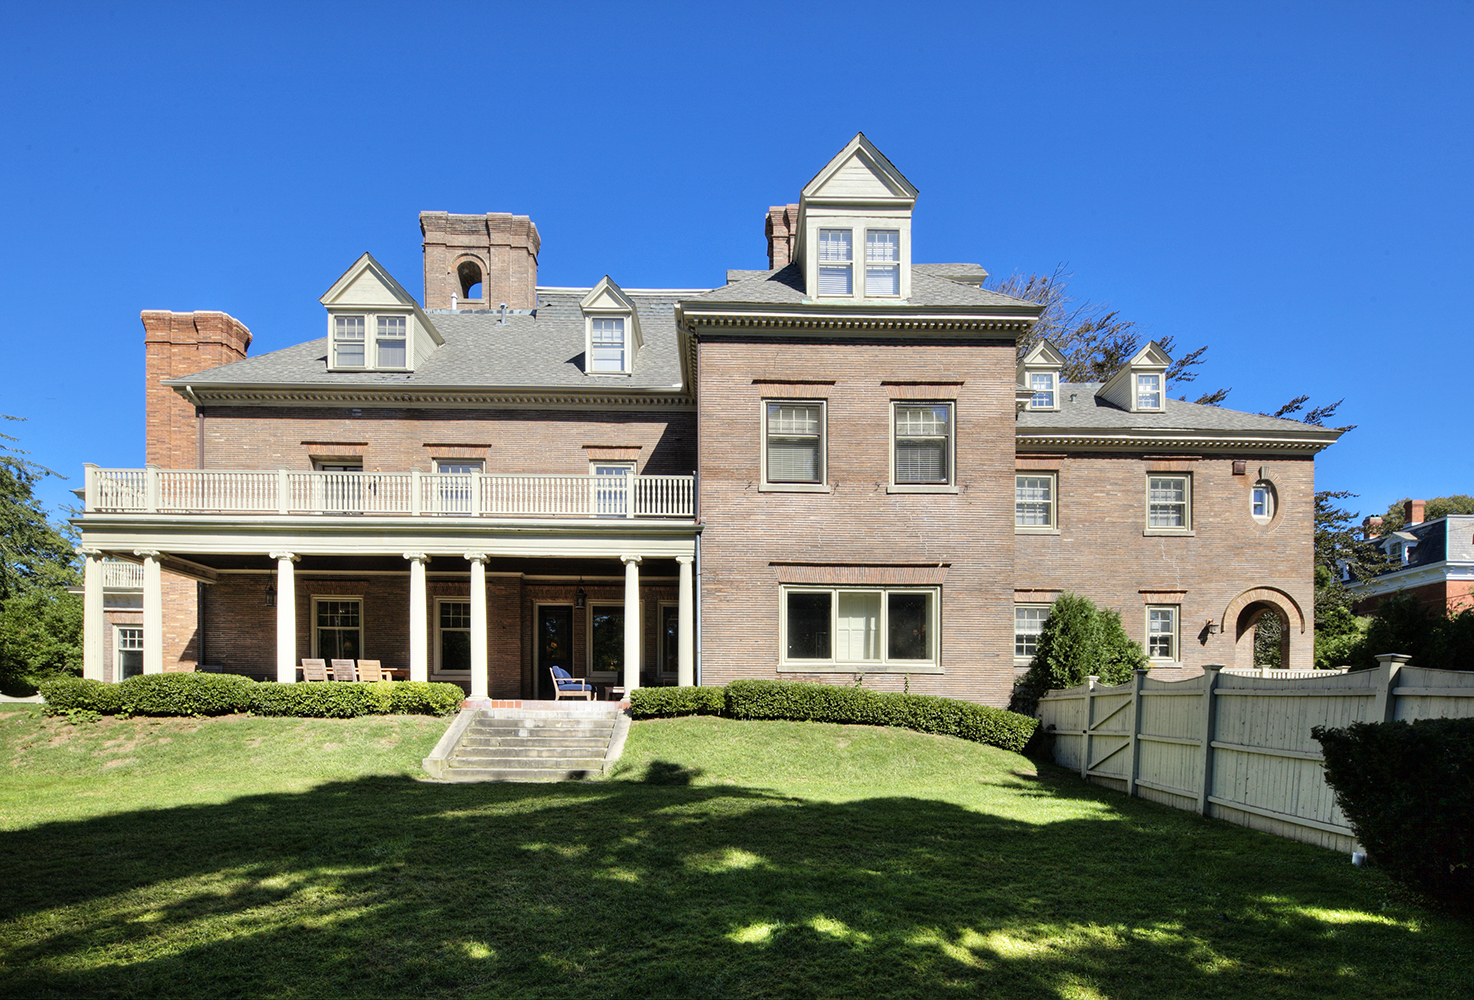 Additional photo for property listing at Historic In-Town Estate: Commodore William Edgar House 25 Old Beach Road Newport, Rhode Island 02840 United States